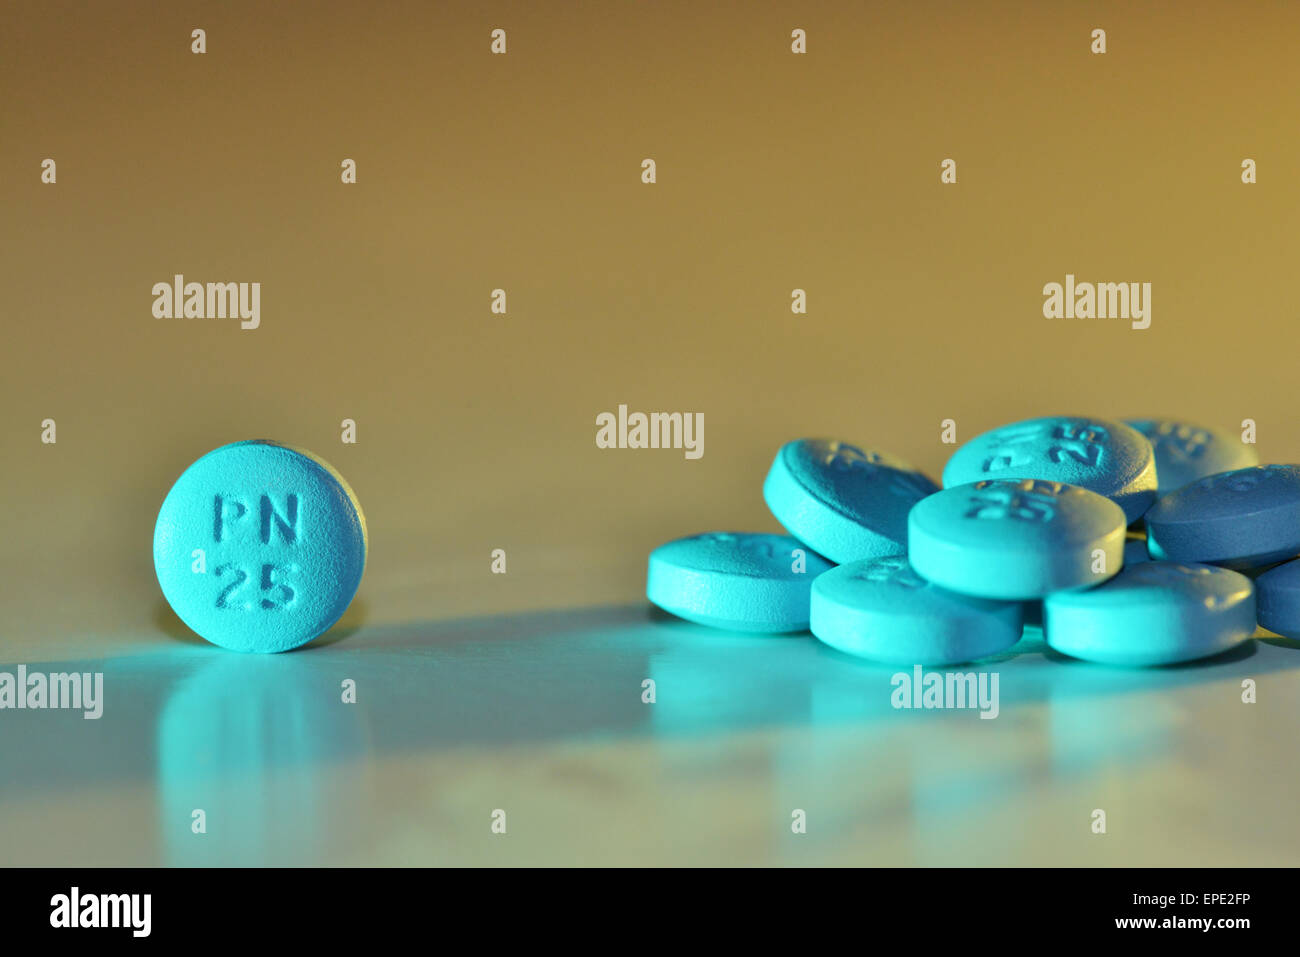 Phenergan tablets Photo Stock